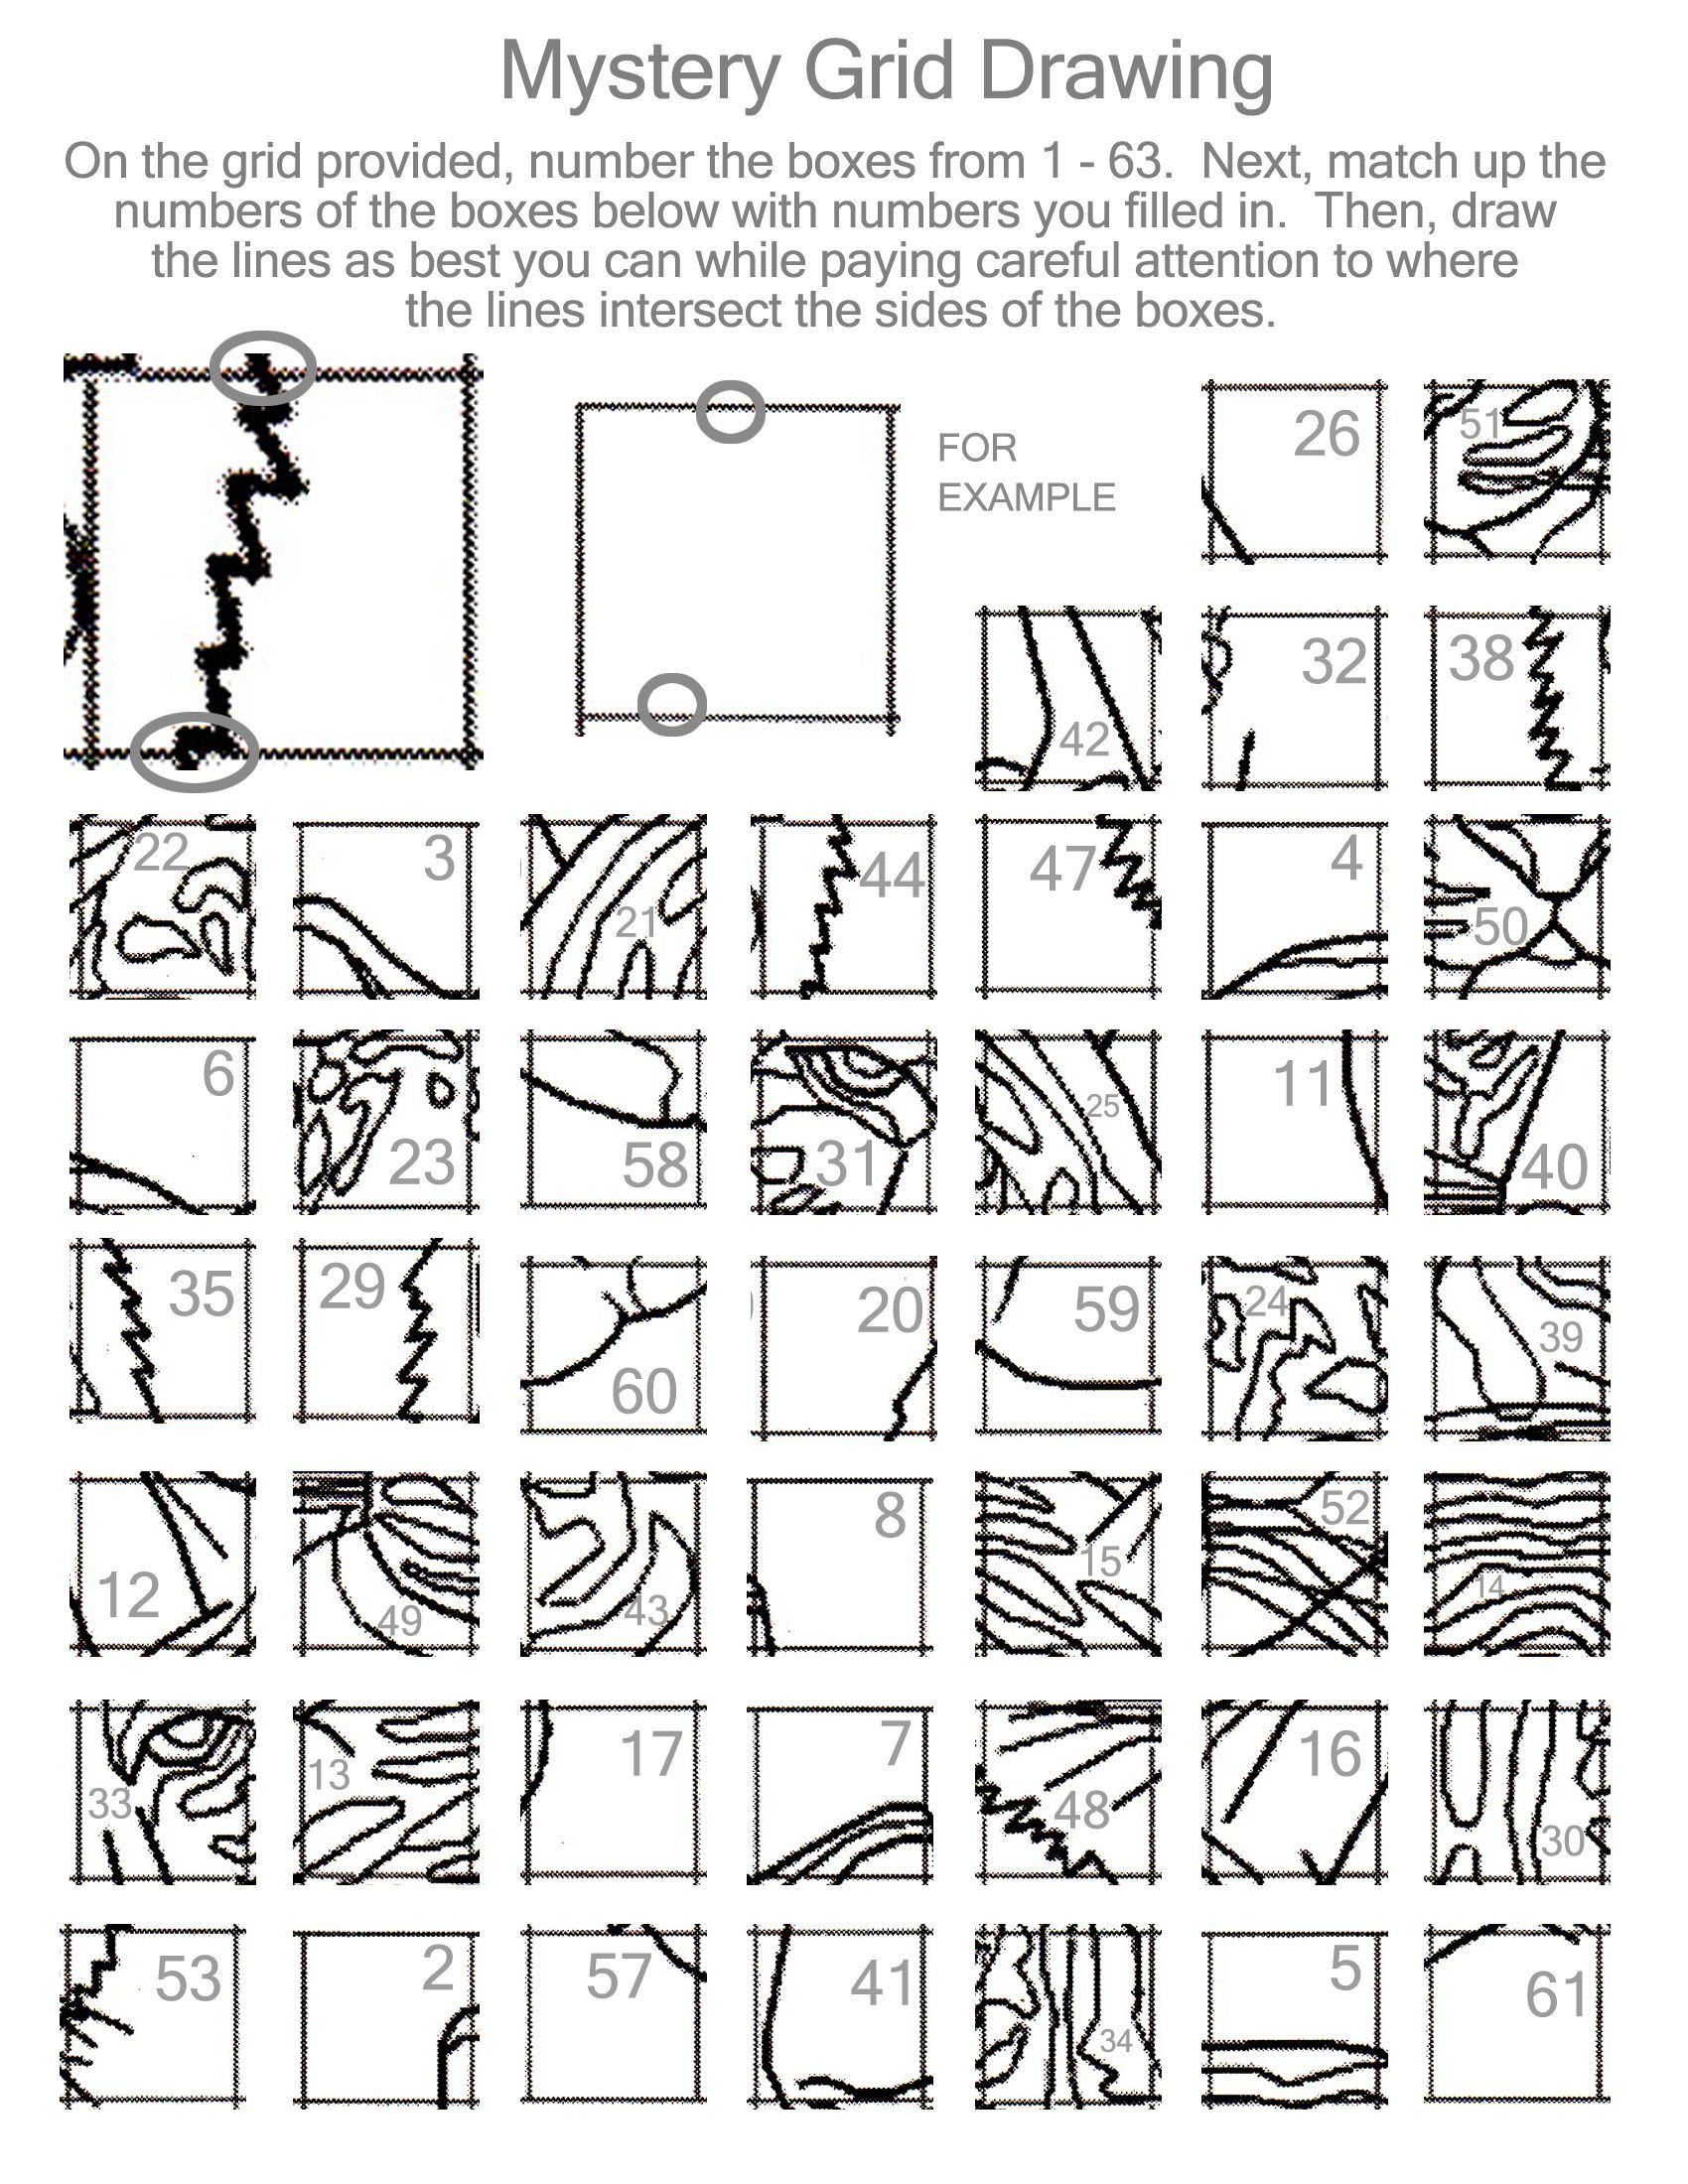 Optical Illusion Worksheets Printable 11 Best Drawing Grid Art Worksheets Printable Images On Best